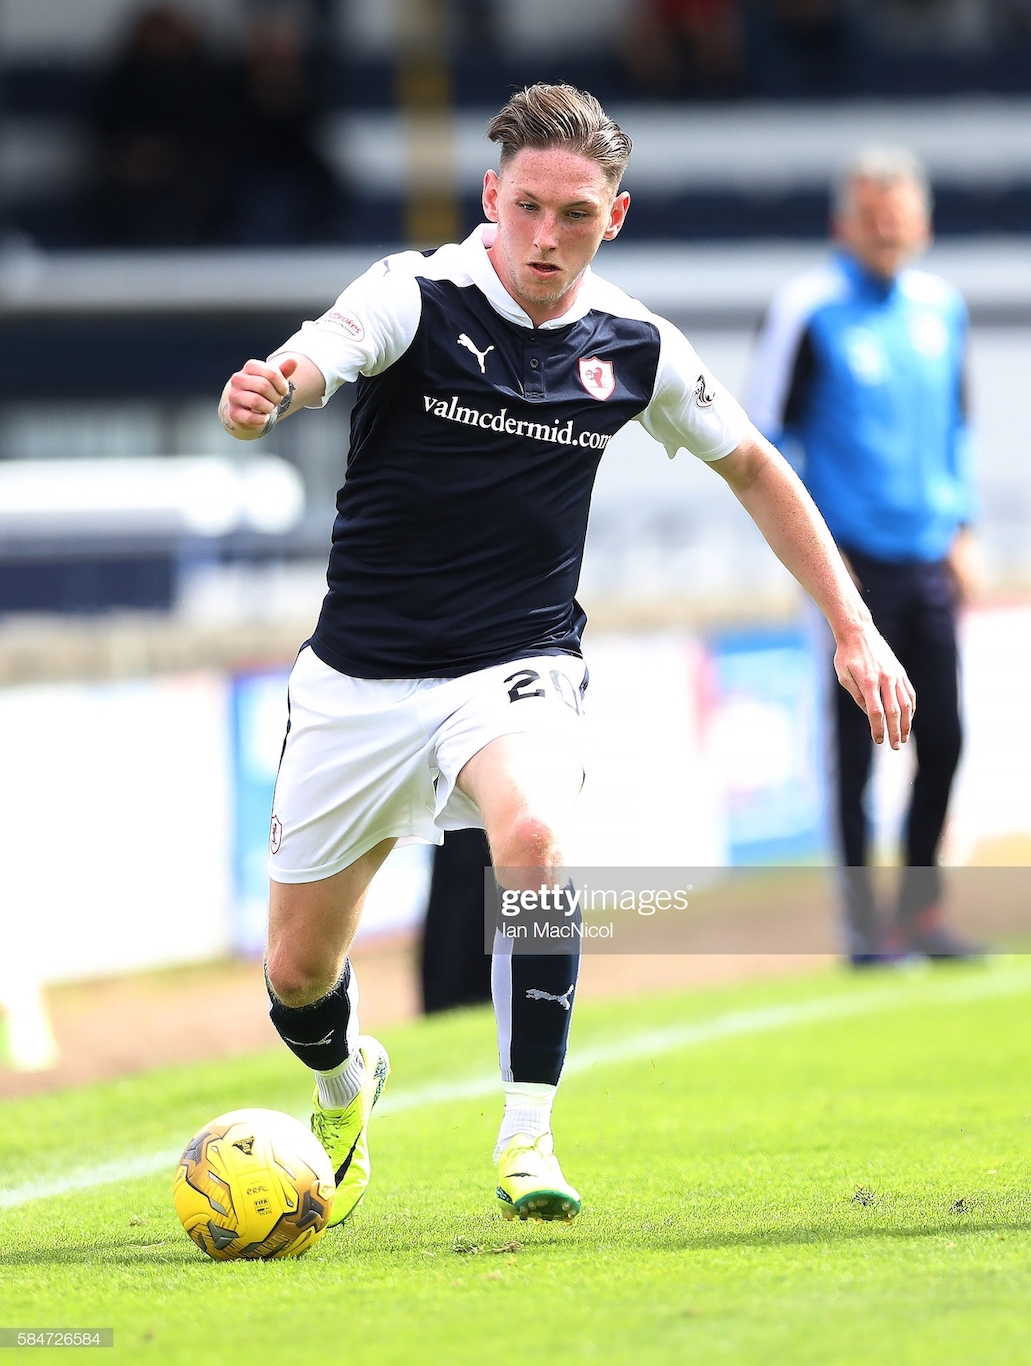 Striker Declan McManus joins Falkirk on loan